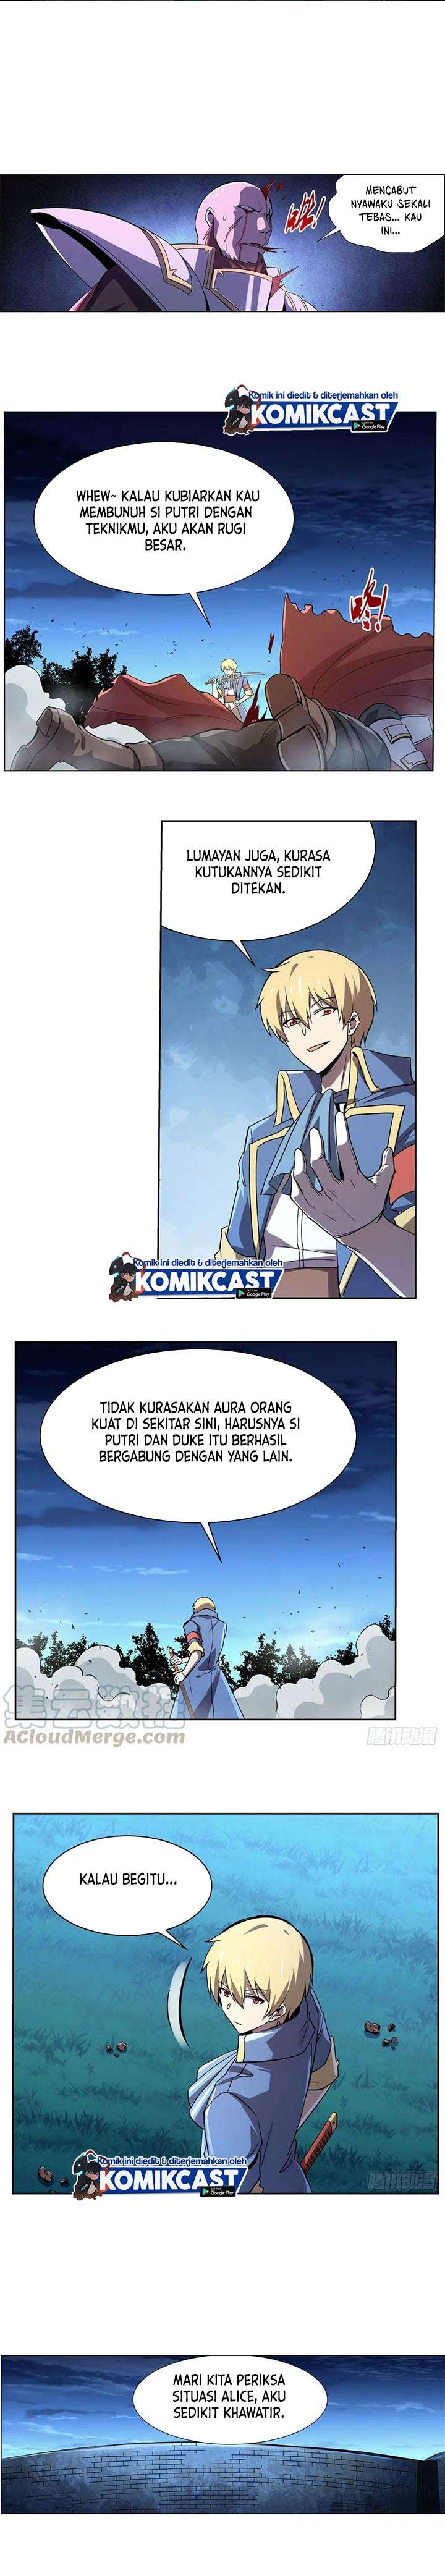 The Demon King Who Lost His Job Chapter 162